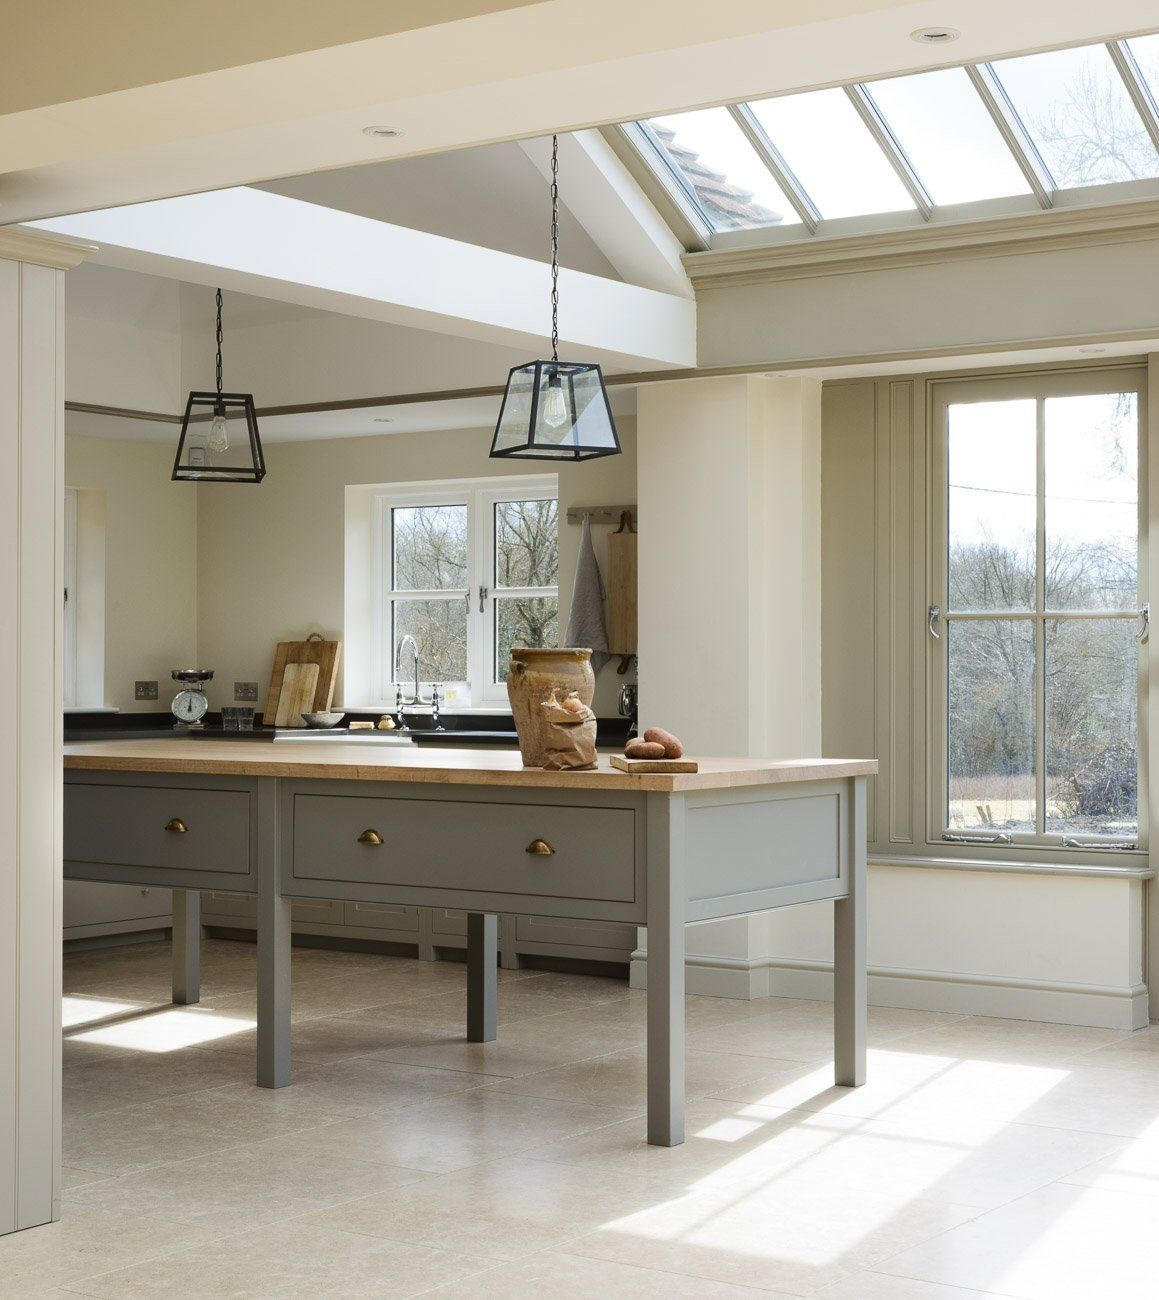 sussex kitchen designs west sussex kitchen devol kitchens kitchen 2623